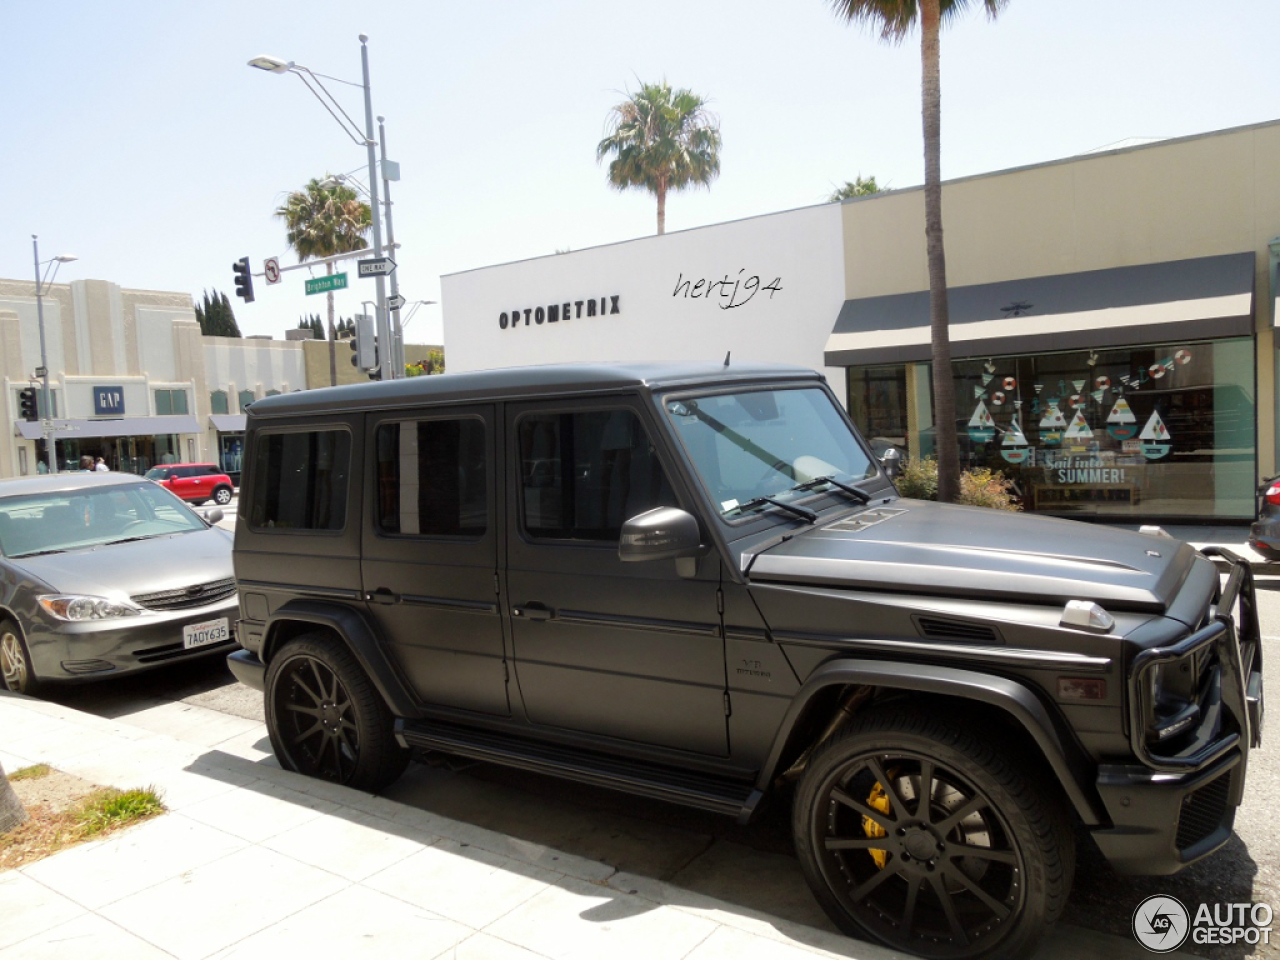 Mercedes benz g 63 amg 2012 22 june 2013 autogespot for Mercedes benz kardashian